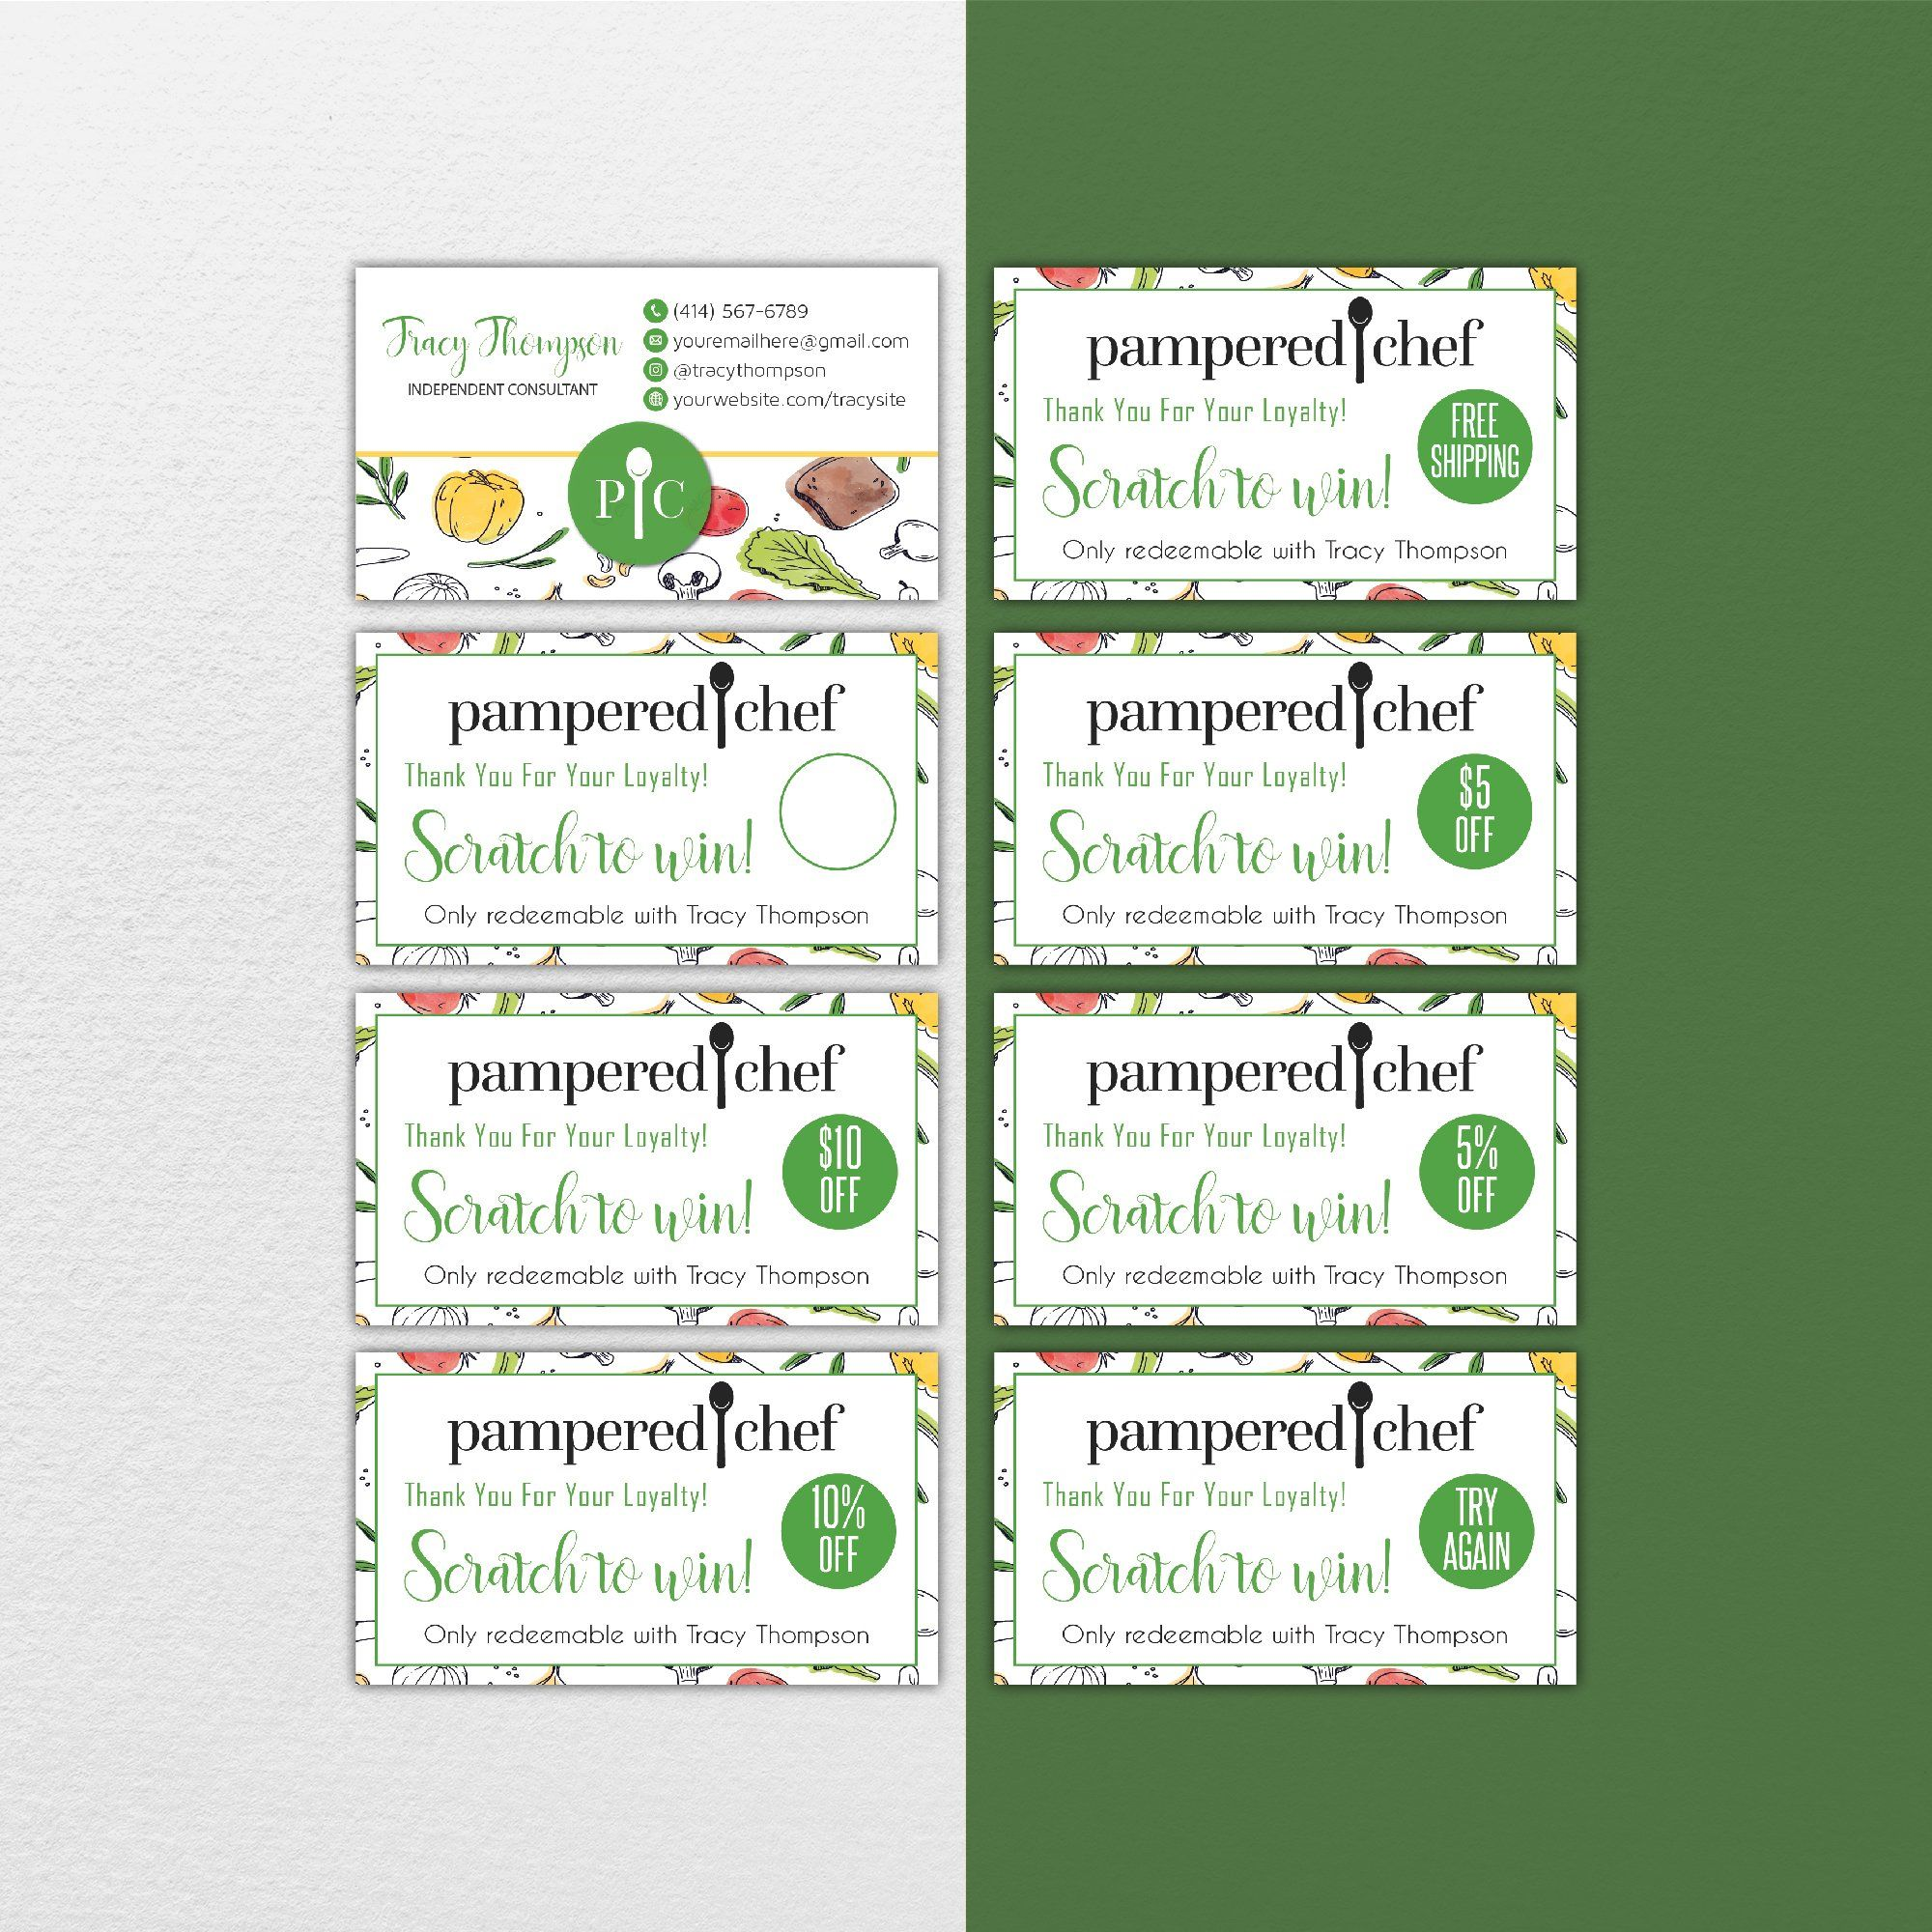 Pin On Pampered Chef Cards Pampered chef gift certificate template